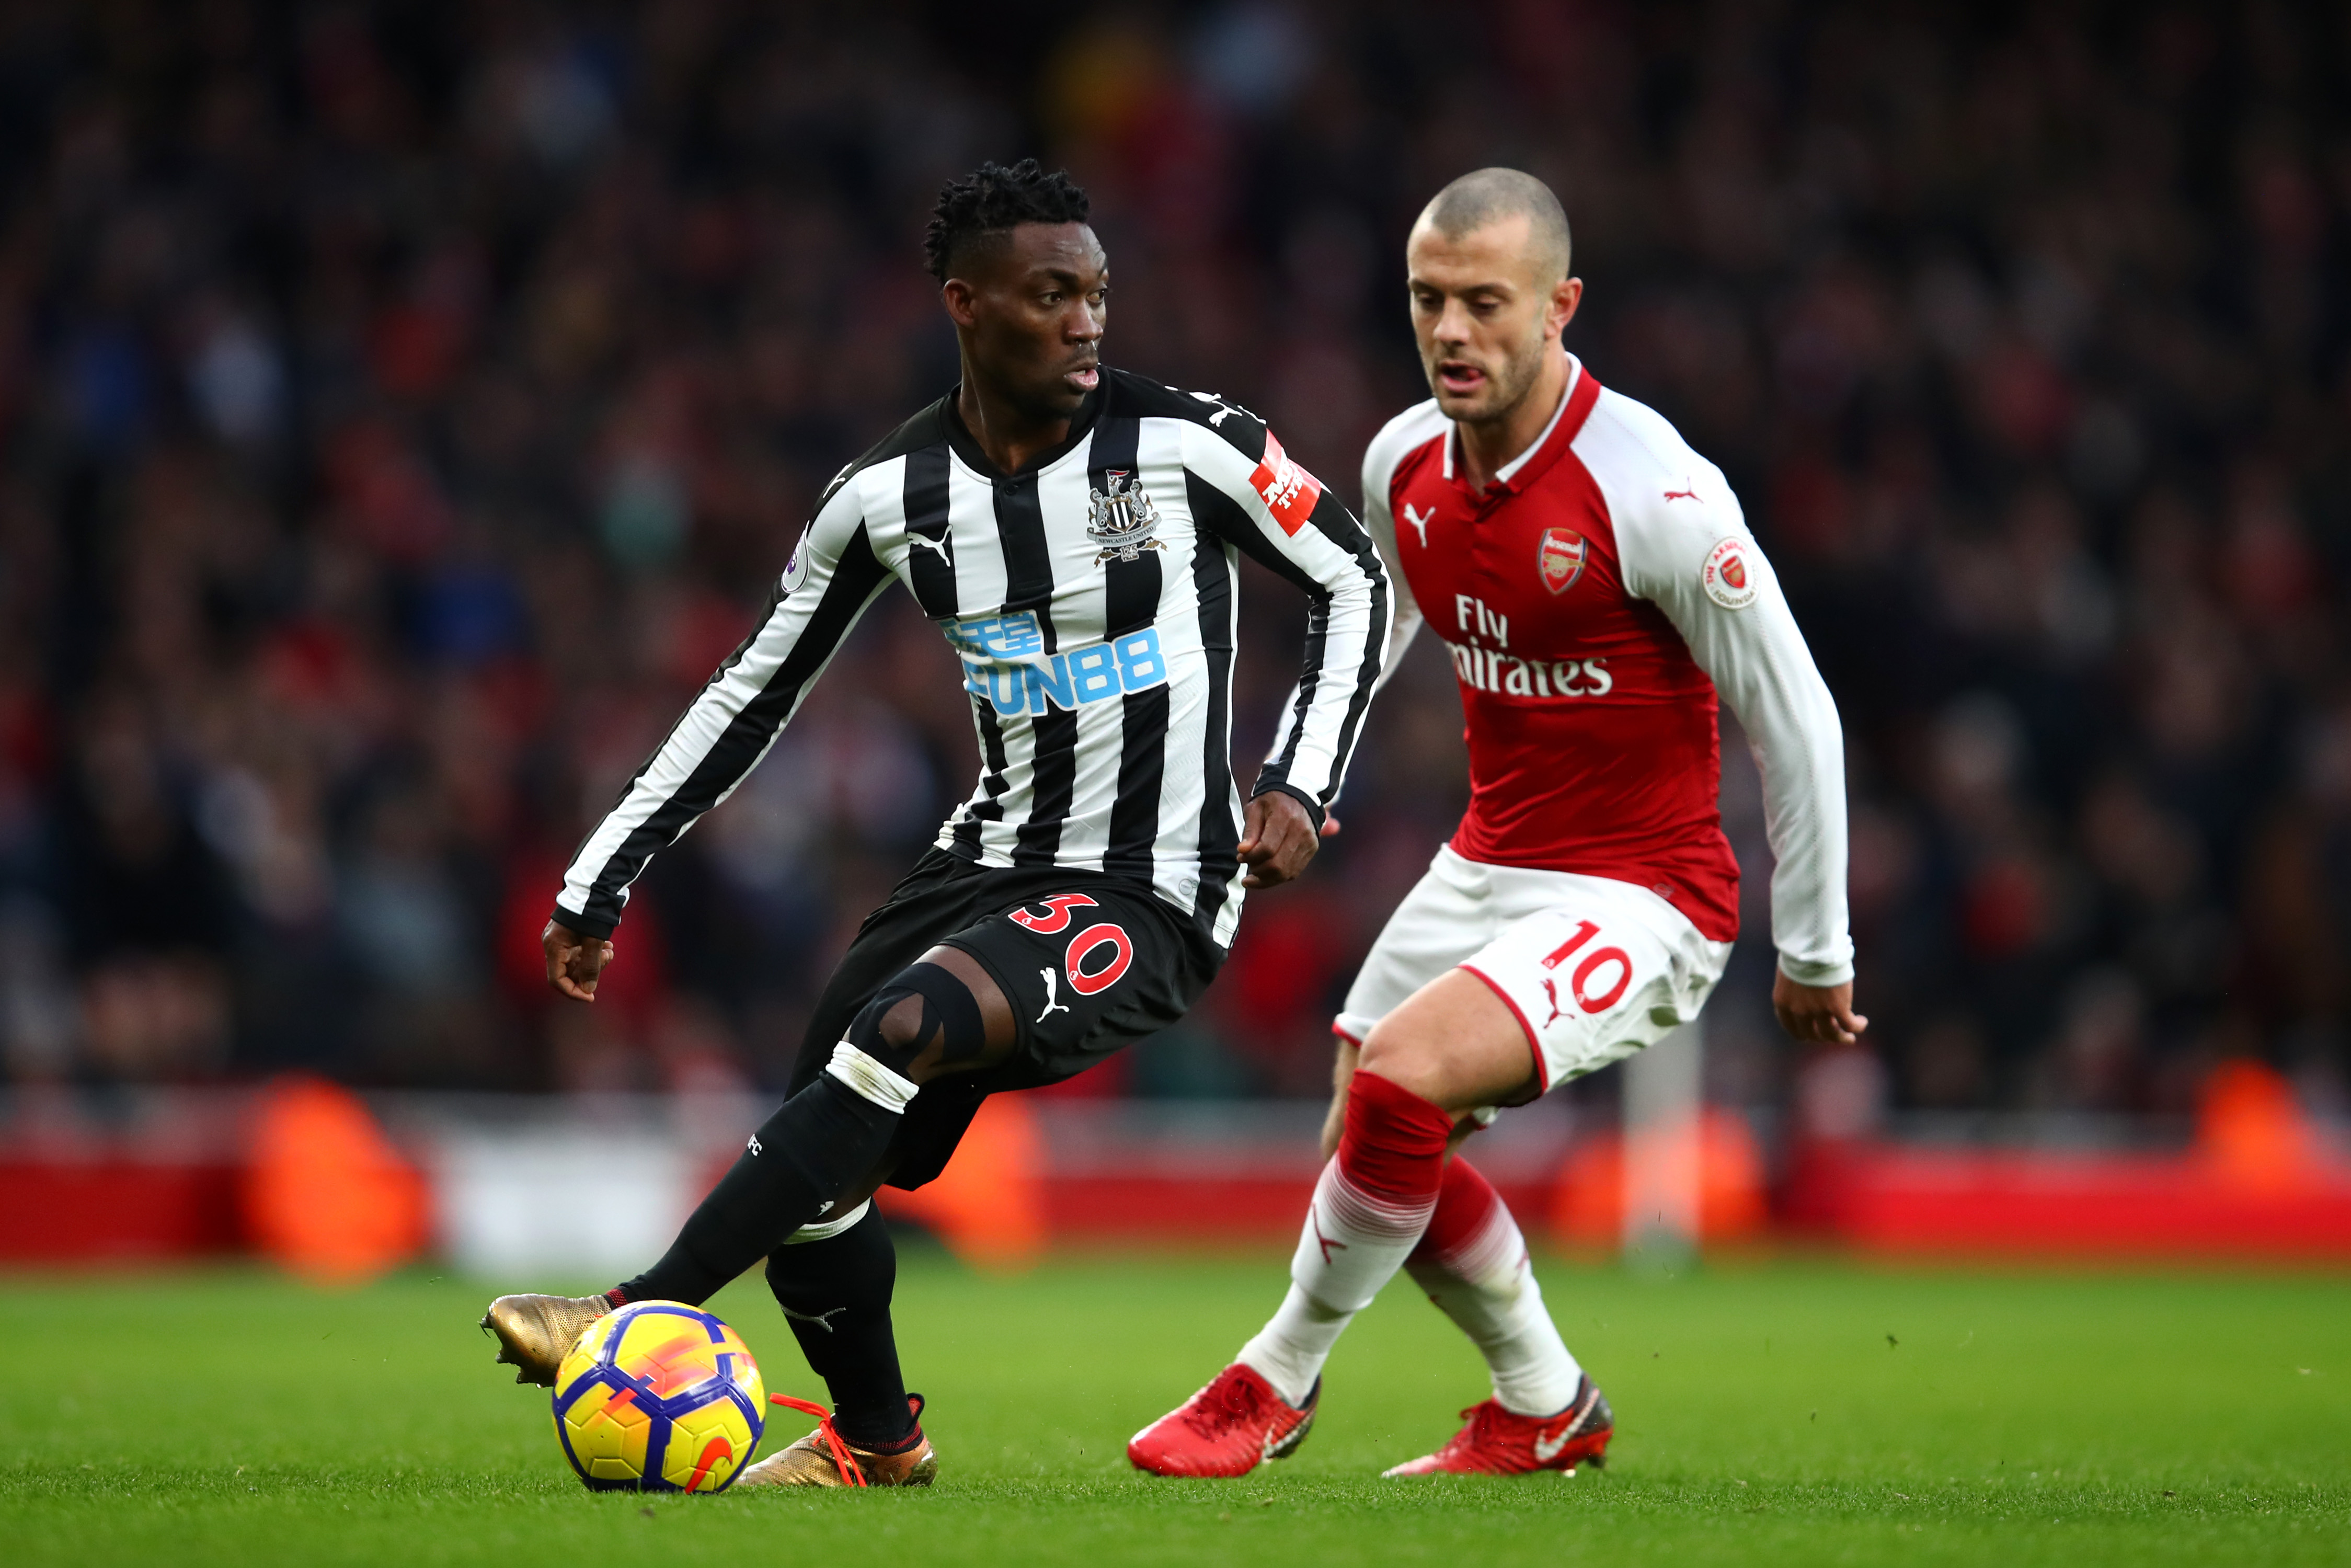 What to watch for: West Ham United vs. Newcastle United